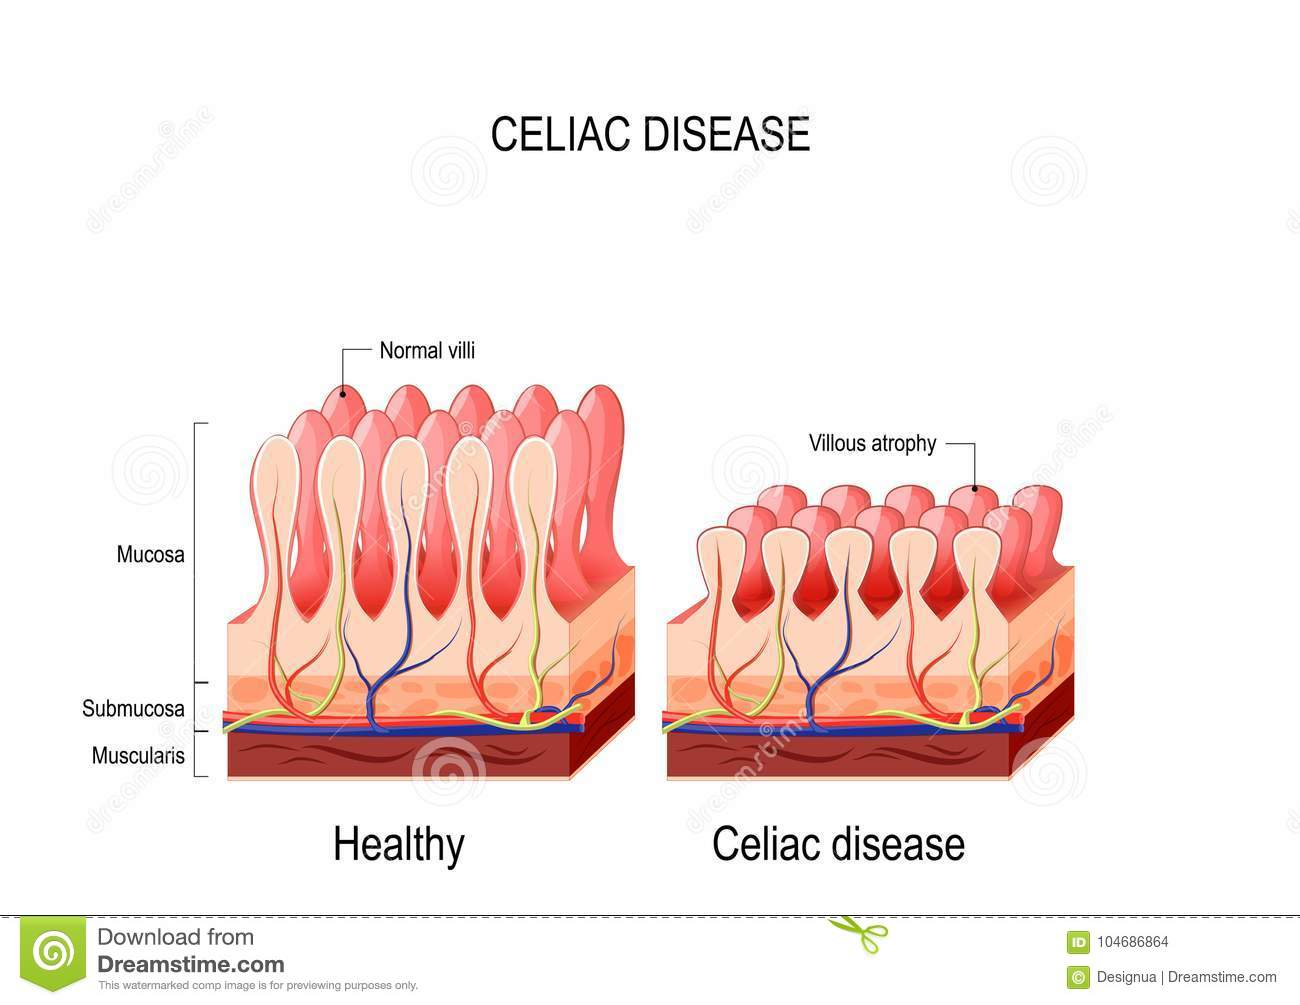 hight resolution of coeliac celiac disease normal villi and villous atrophy small bowel showing coeliac disease manifested by blunting of vill vector diagram for medical use